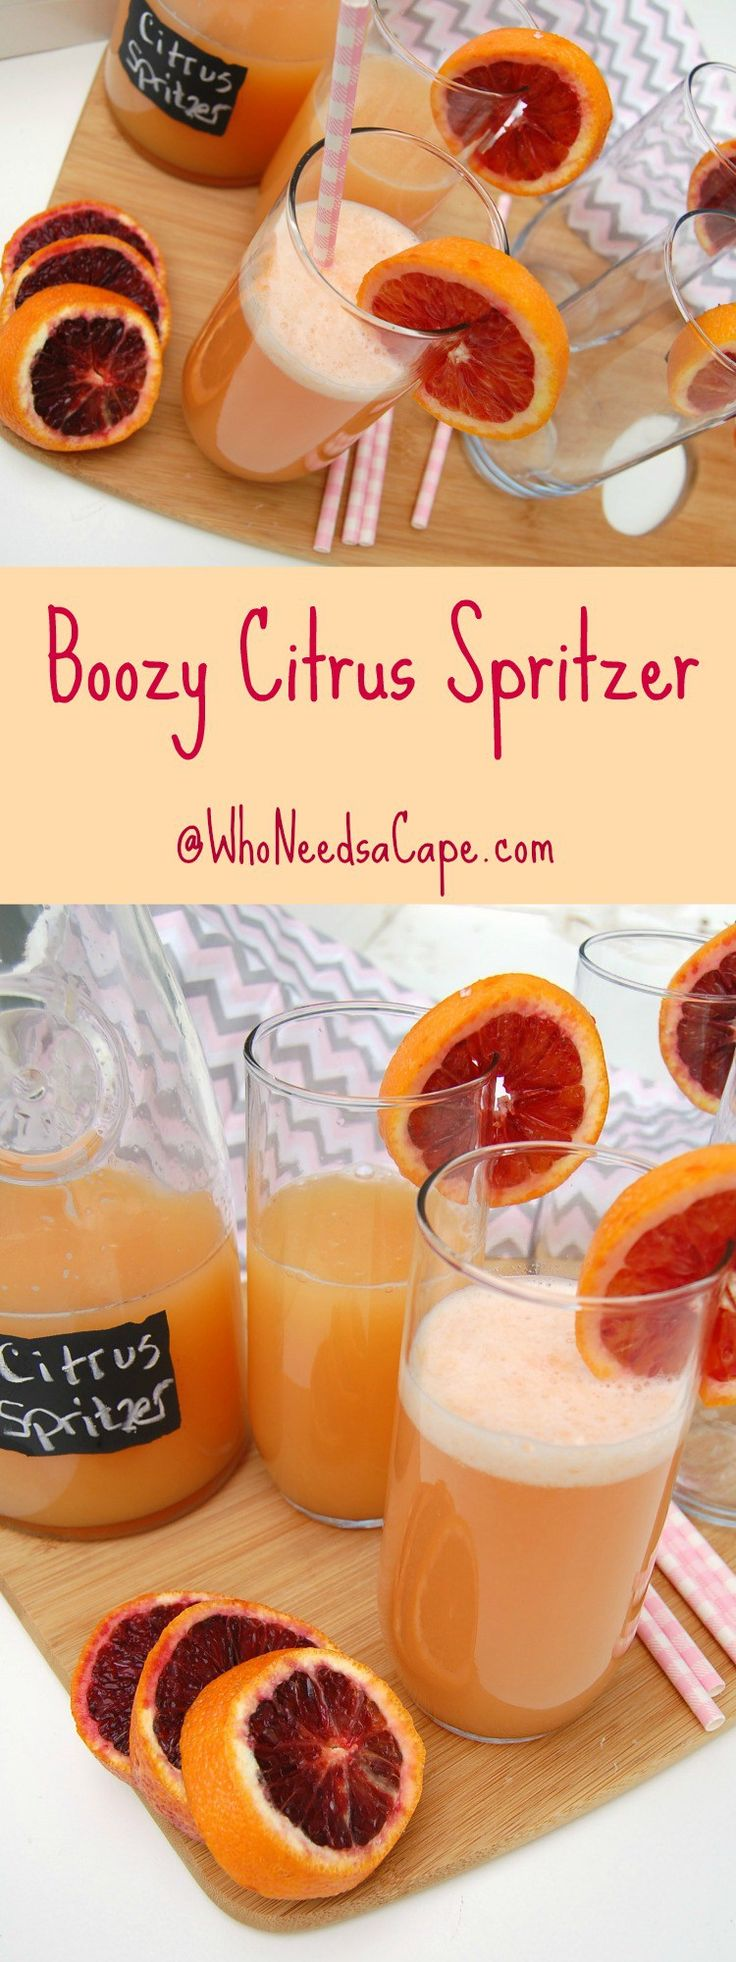 Boozy Citrus Spritzer is a refreshing cocktail to drink. Serve it in a ...